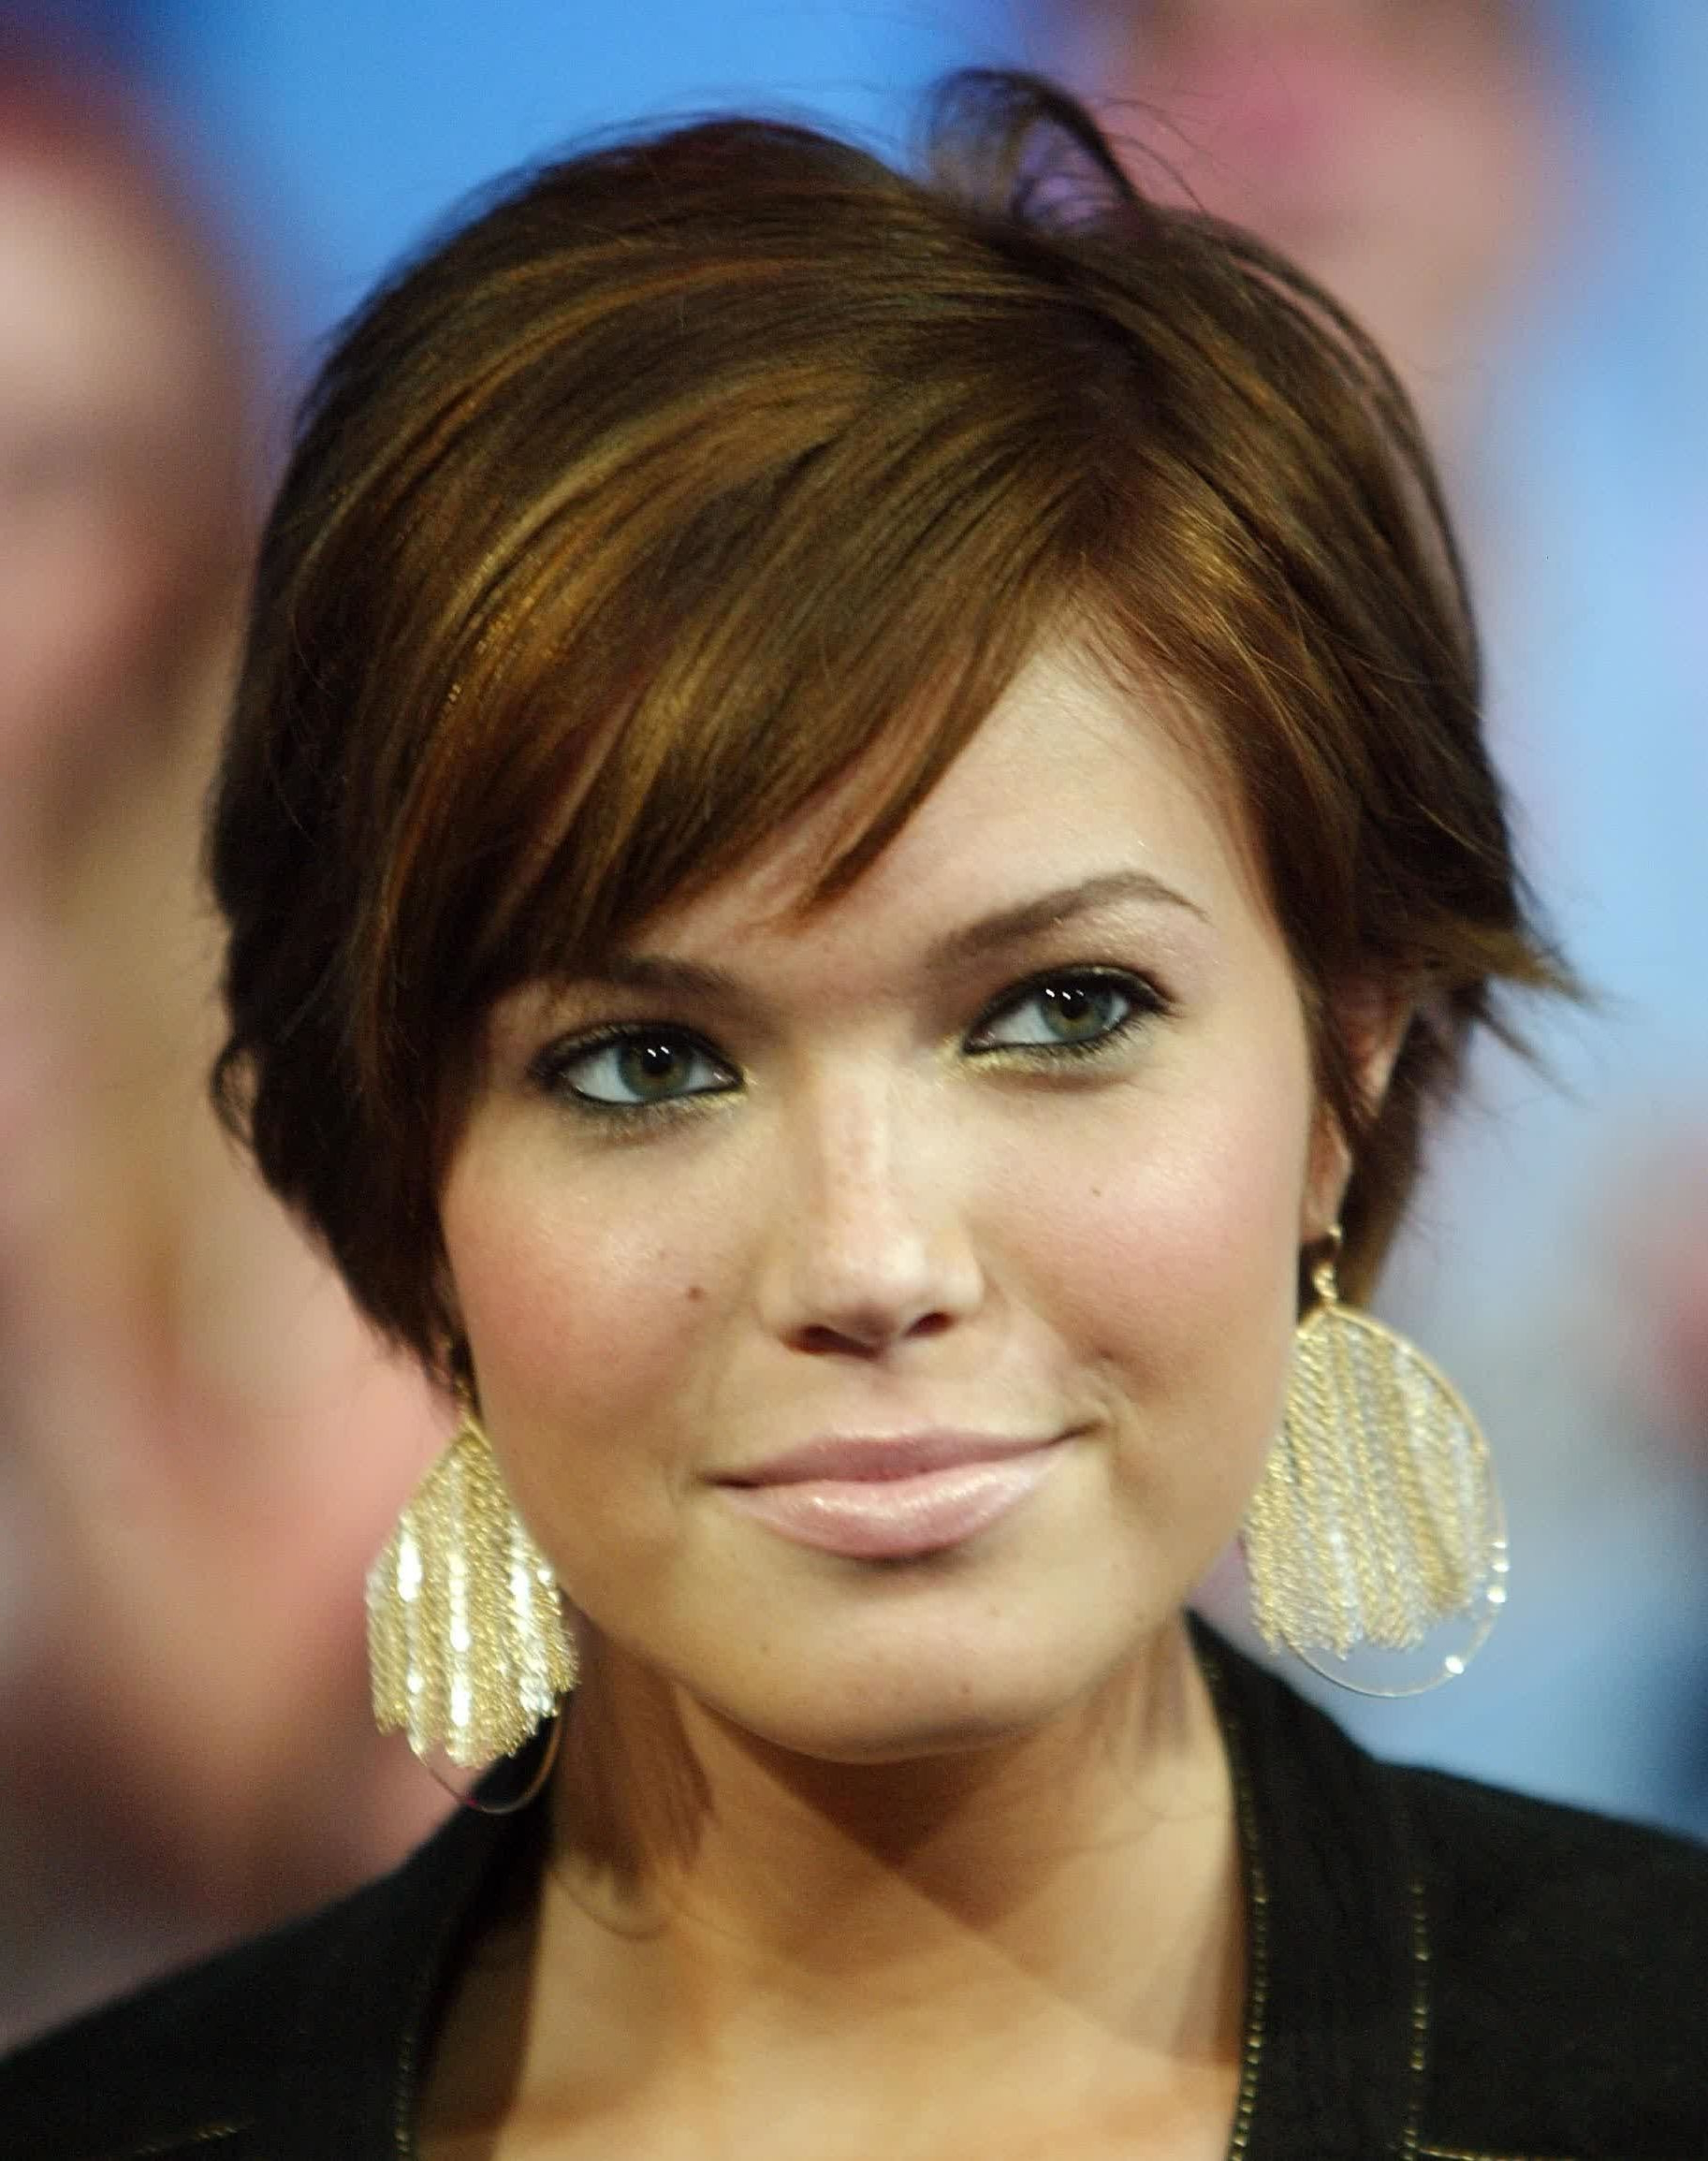 Short Hair With Bangs Round Face Short Hair Round Face Double Chin With Short Hairstyles For A Round Face (View 12 of 25)